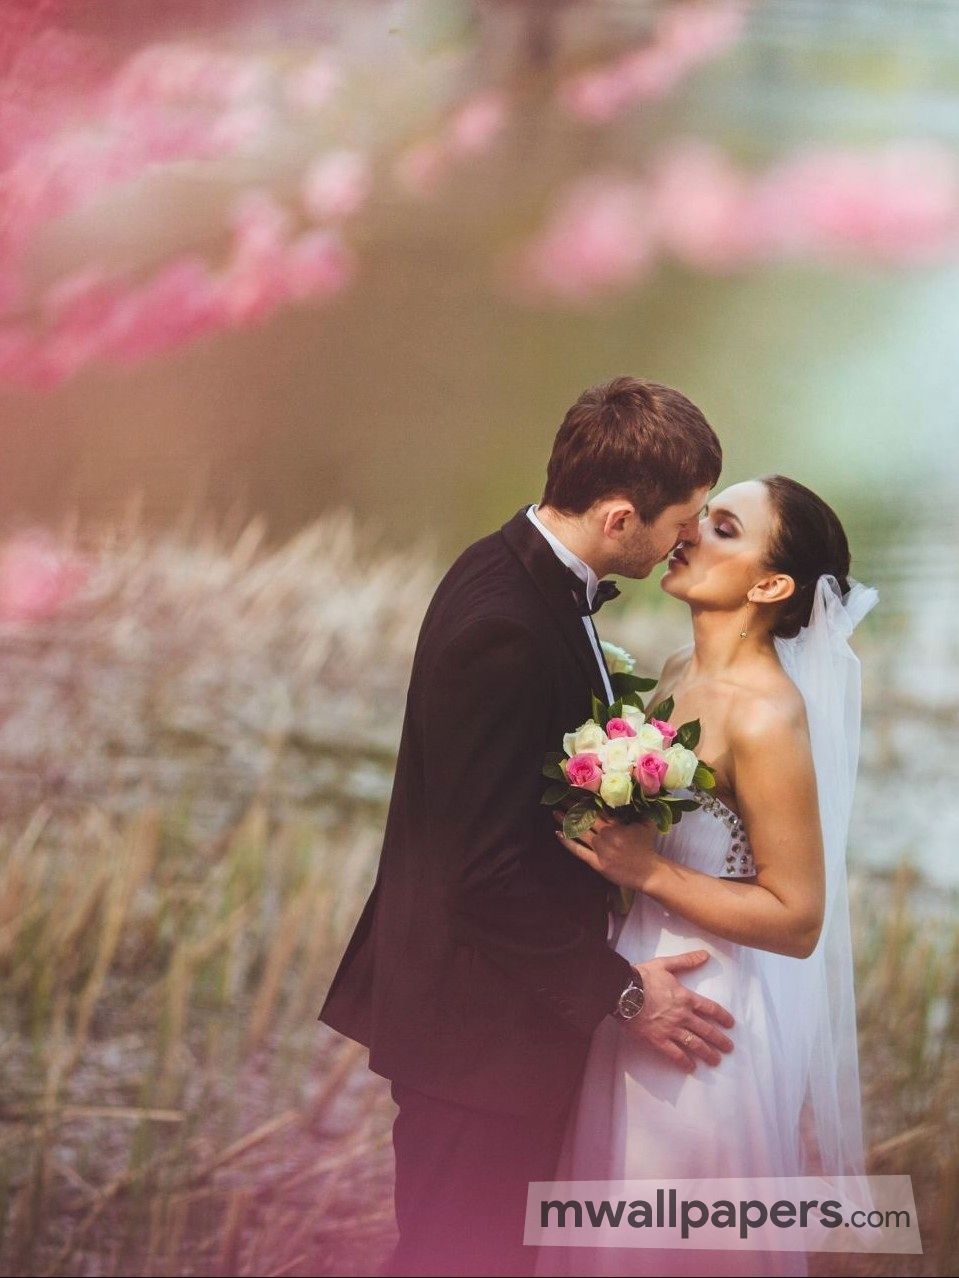 Love Images (HD) (249) - Love